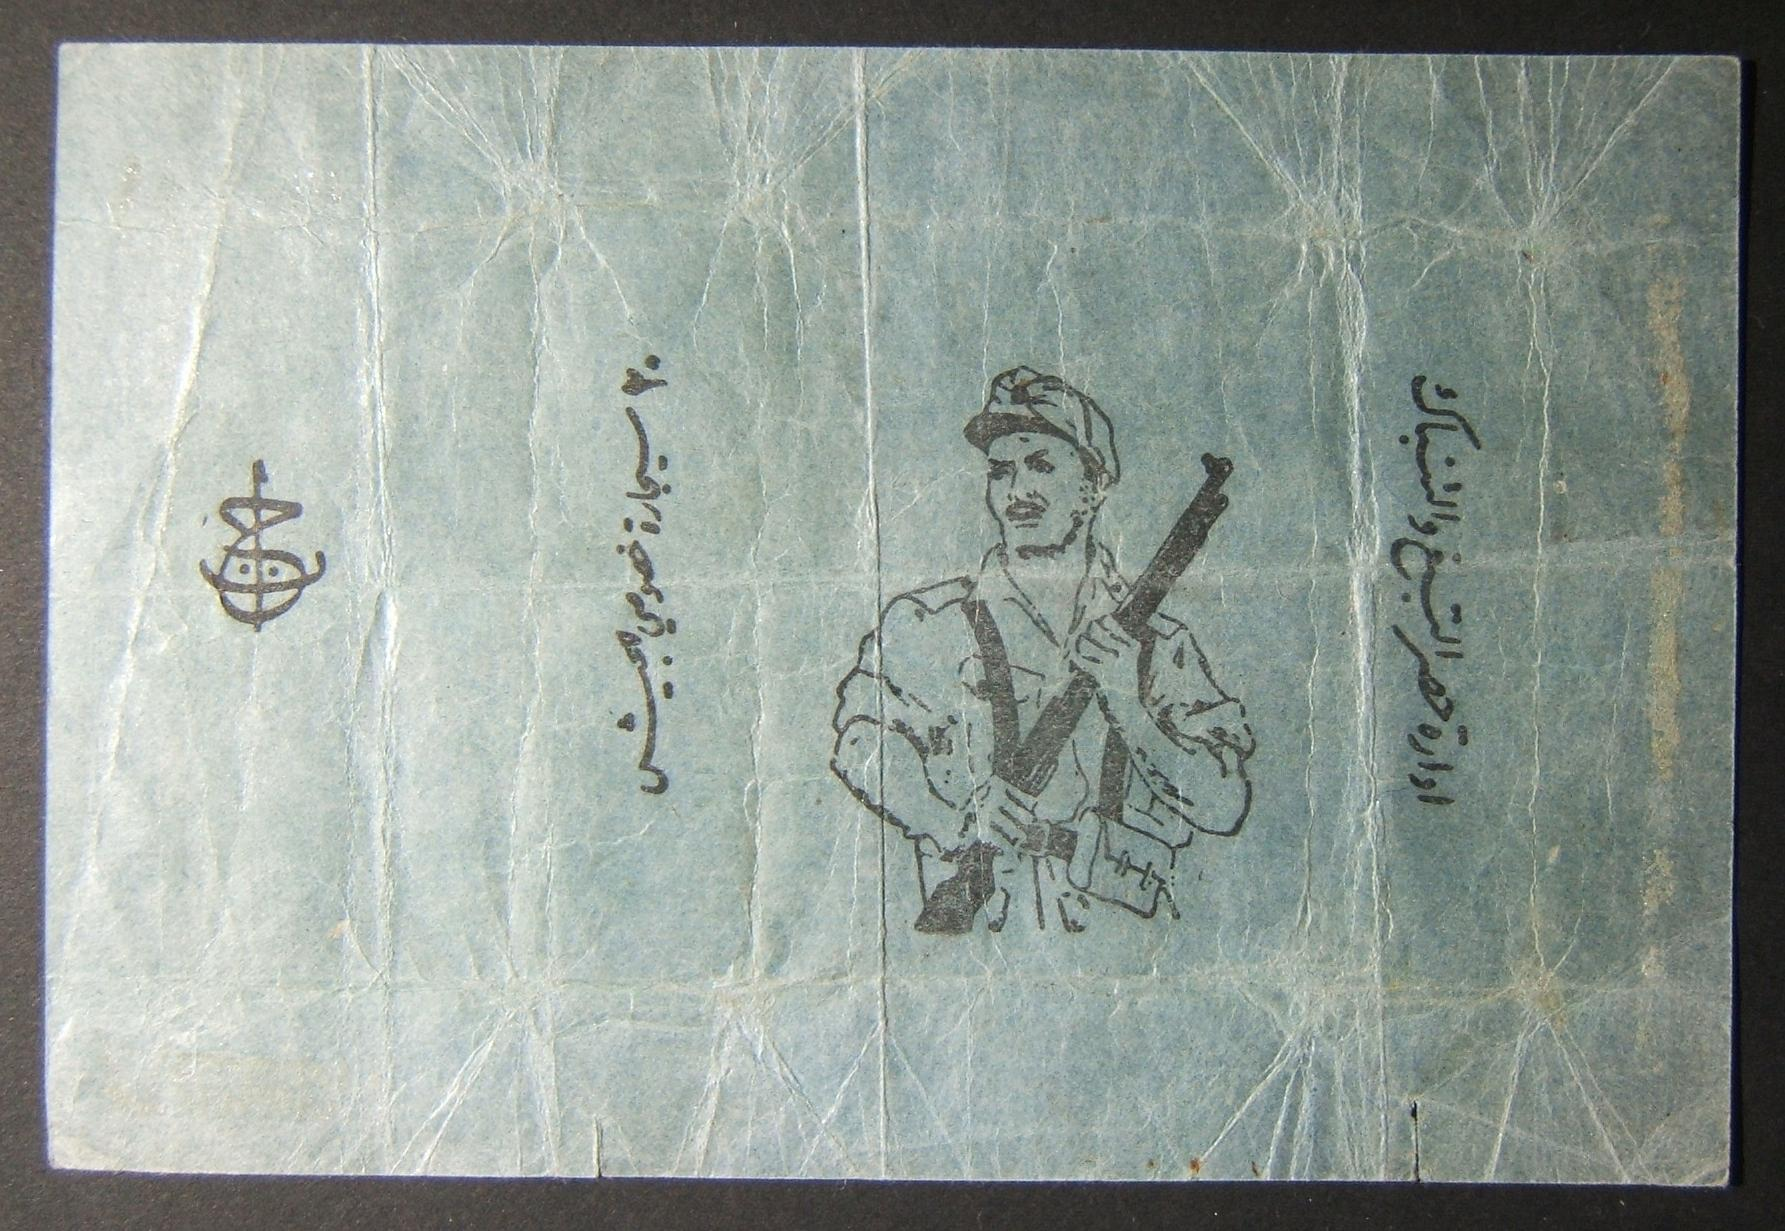 Egypt? illustrated blue wrapper for package of cigarettes for soldiers, 1950's